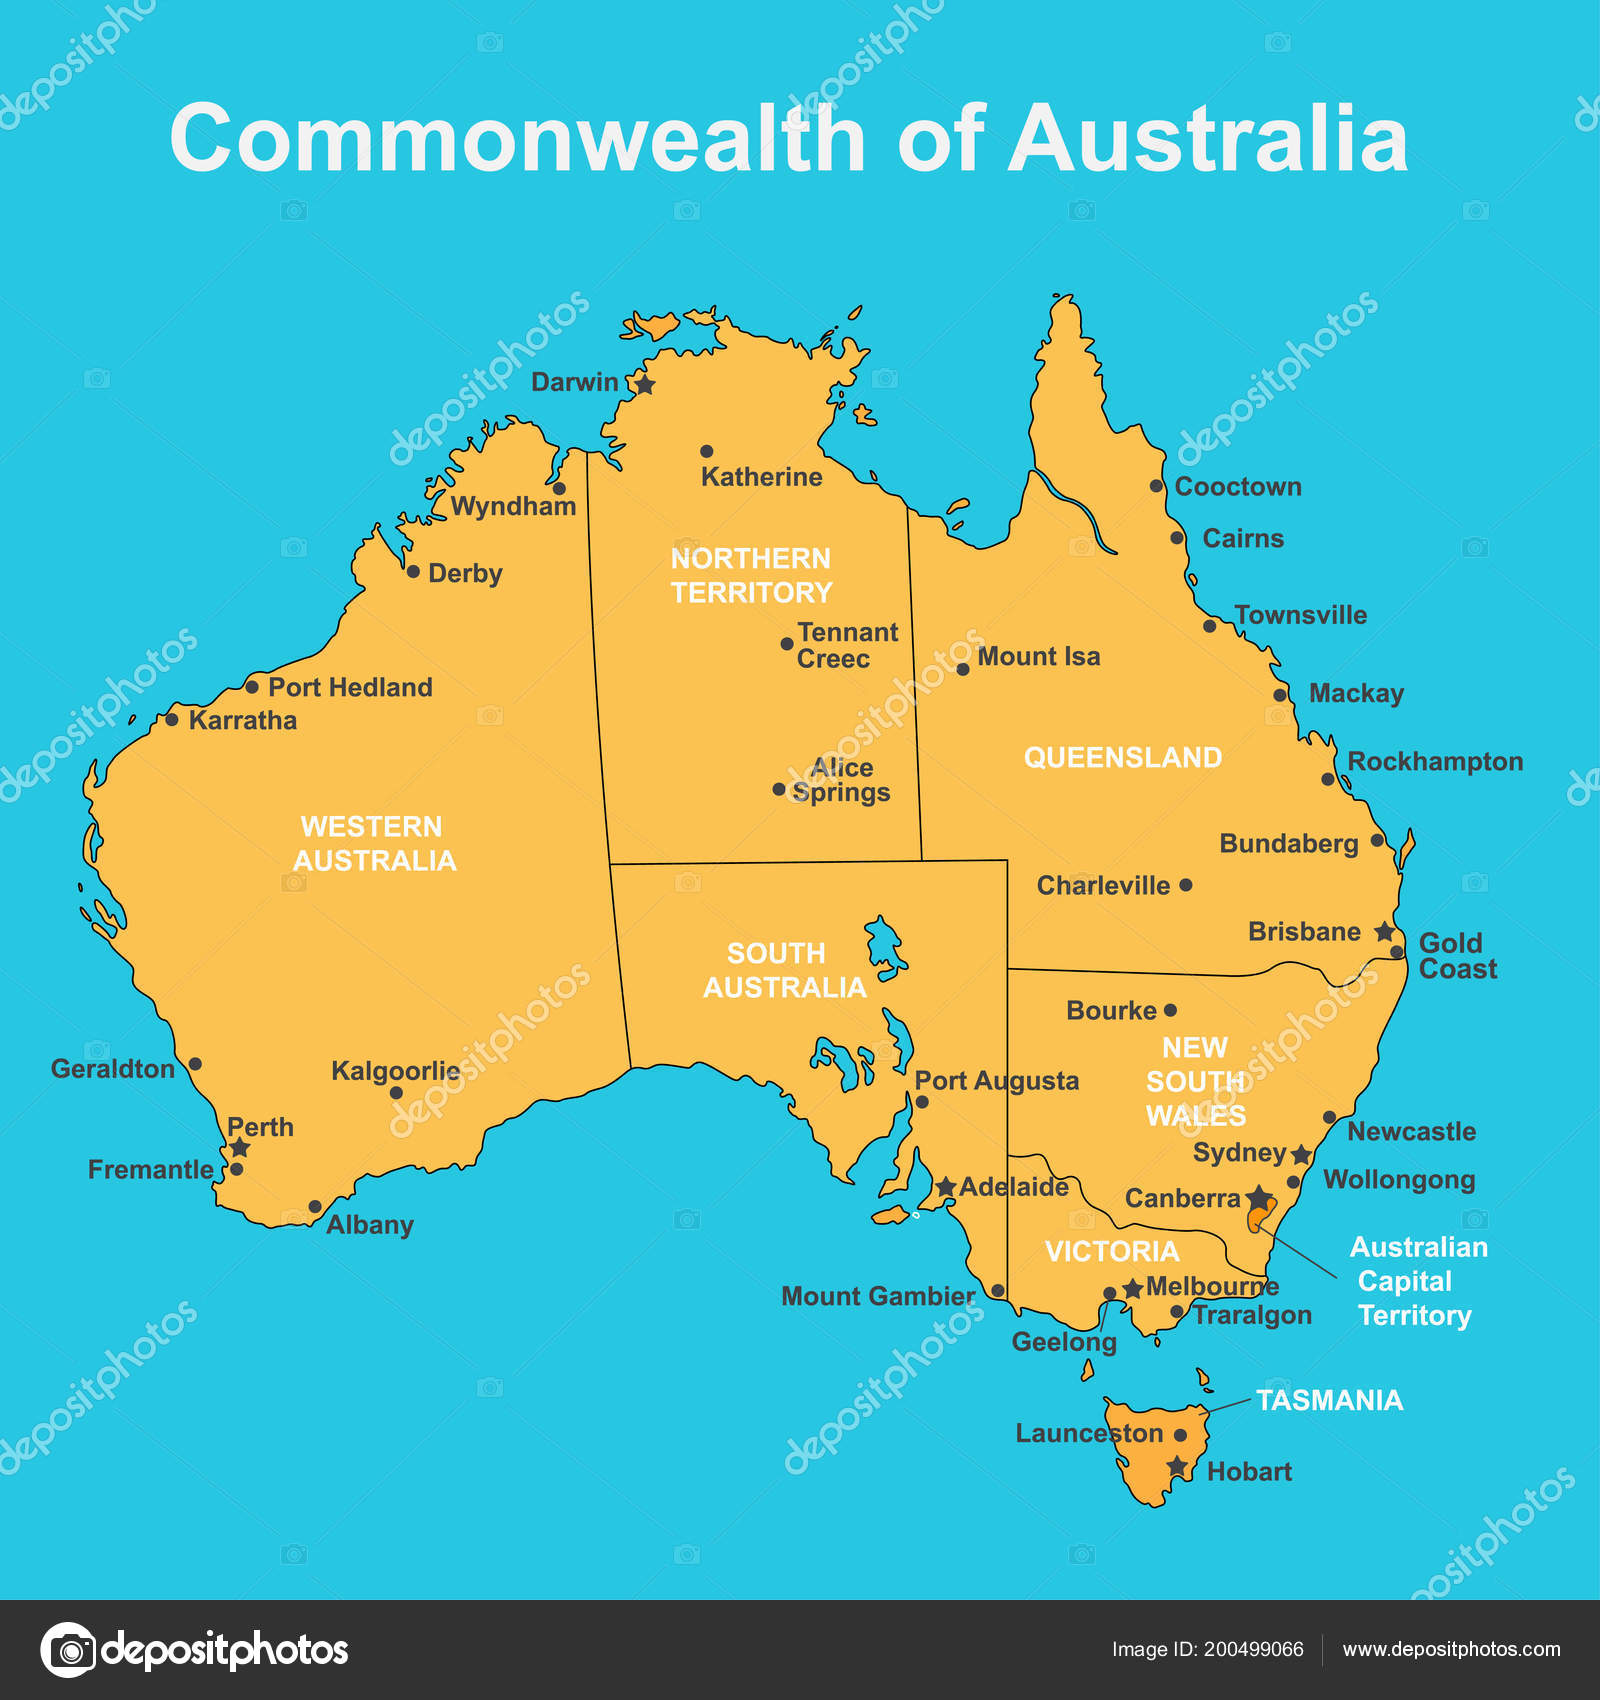 Map Of Victoria Australia With Towns.Map Of Australia With Major Towns And Cities Vector